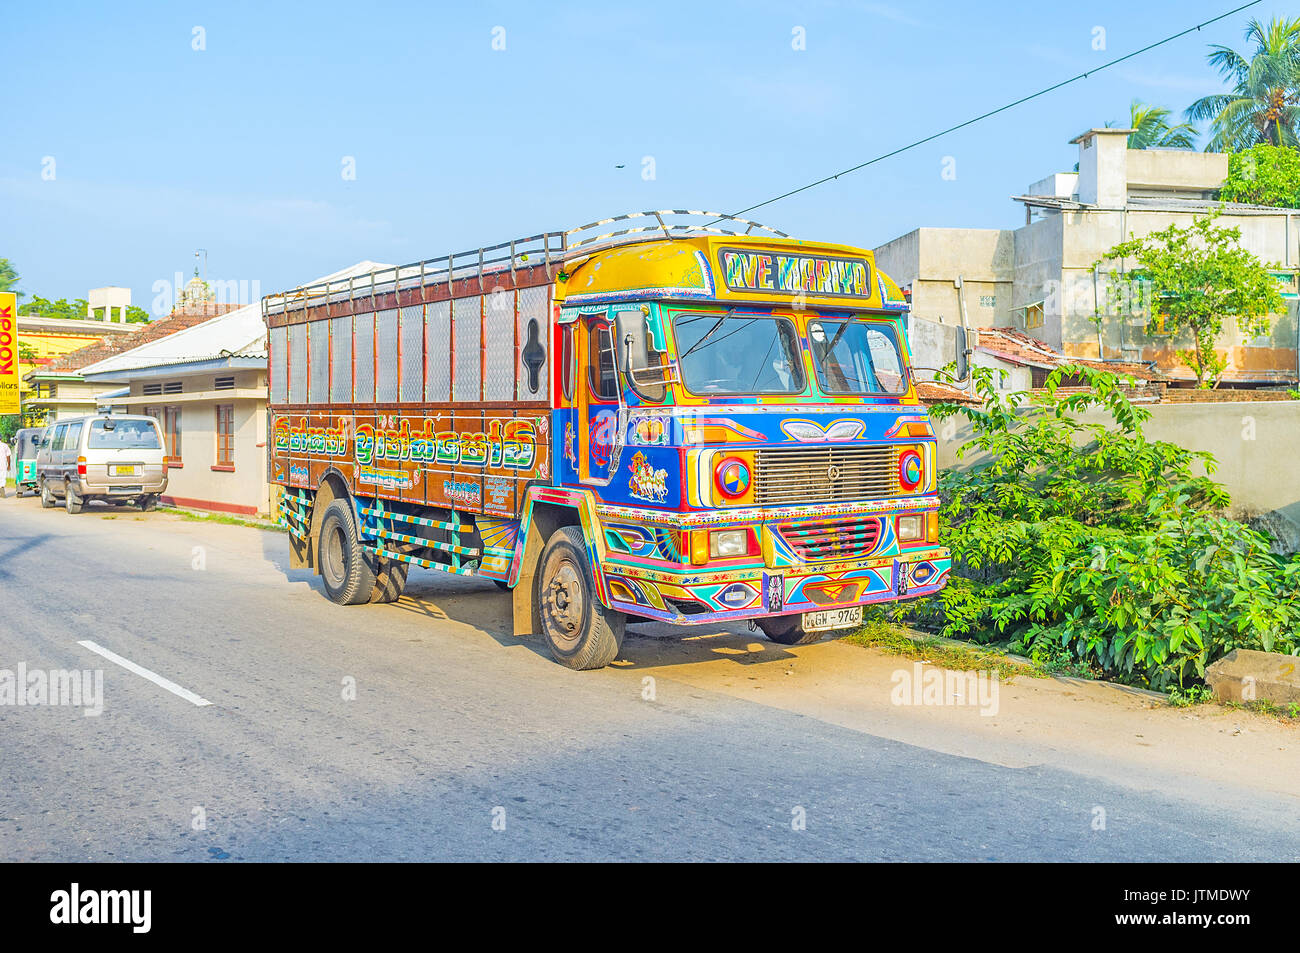 NEGOMBO, SRI LANKA - DECEMBER 7, 2016: The bright painted  truck is parked by the road in residential neighborhood, Stock Photo